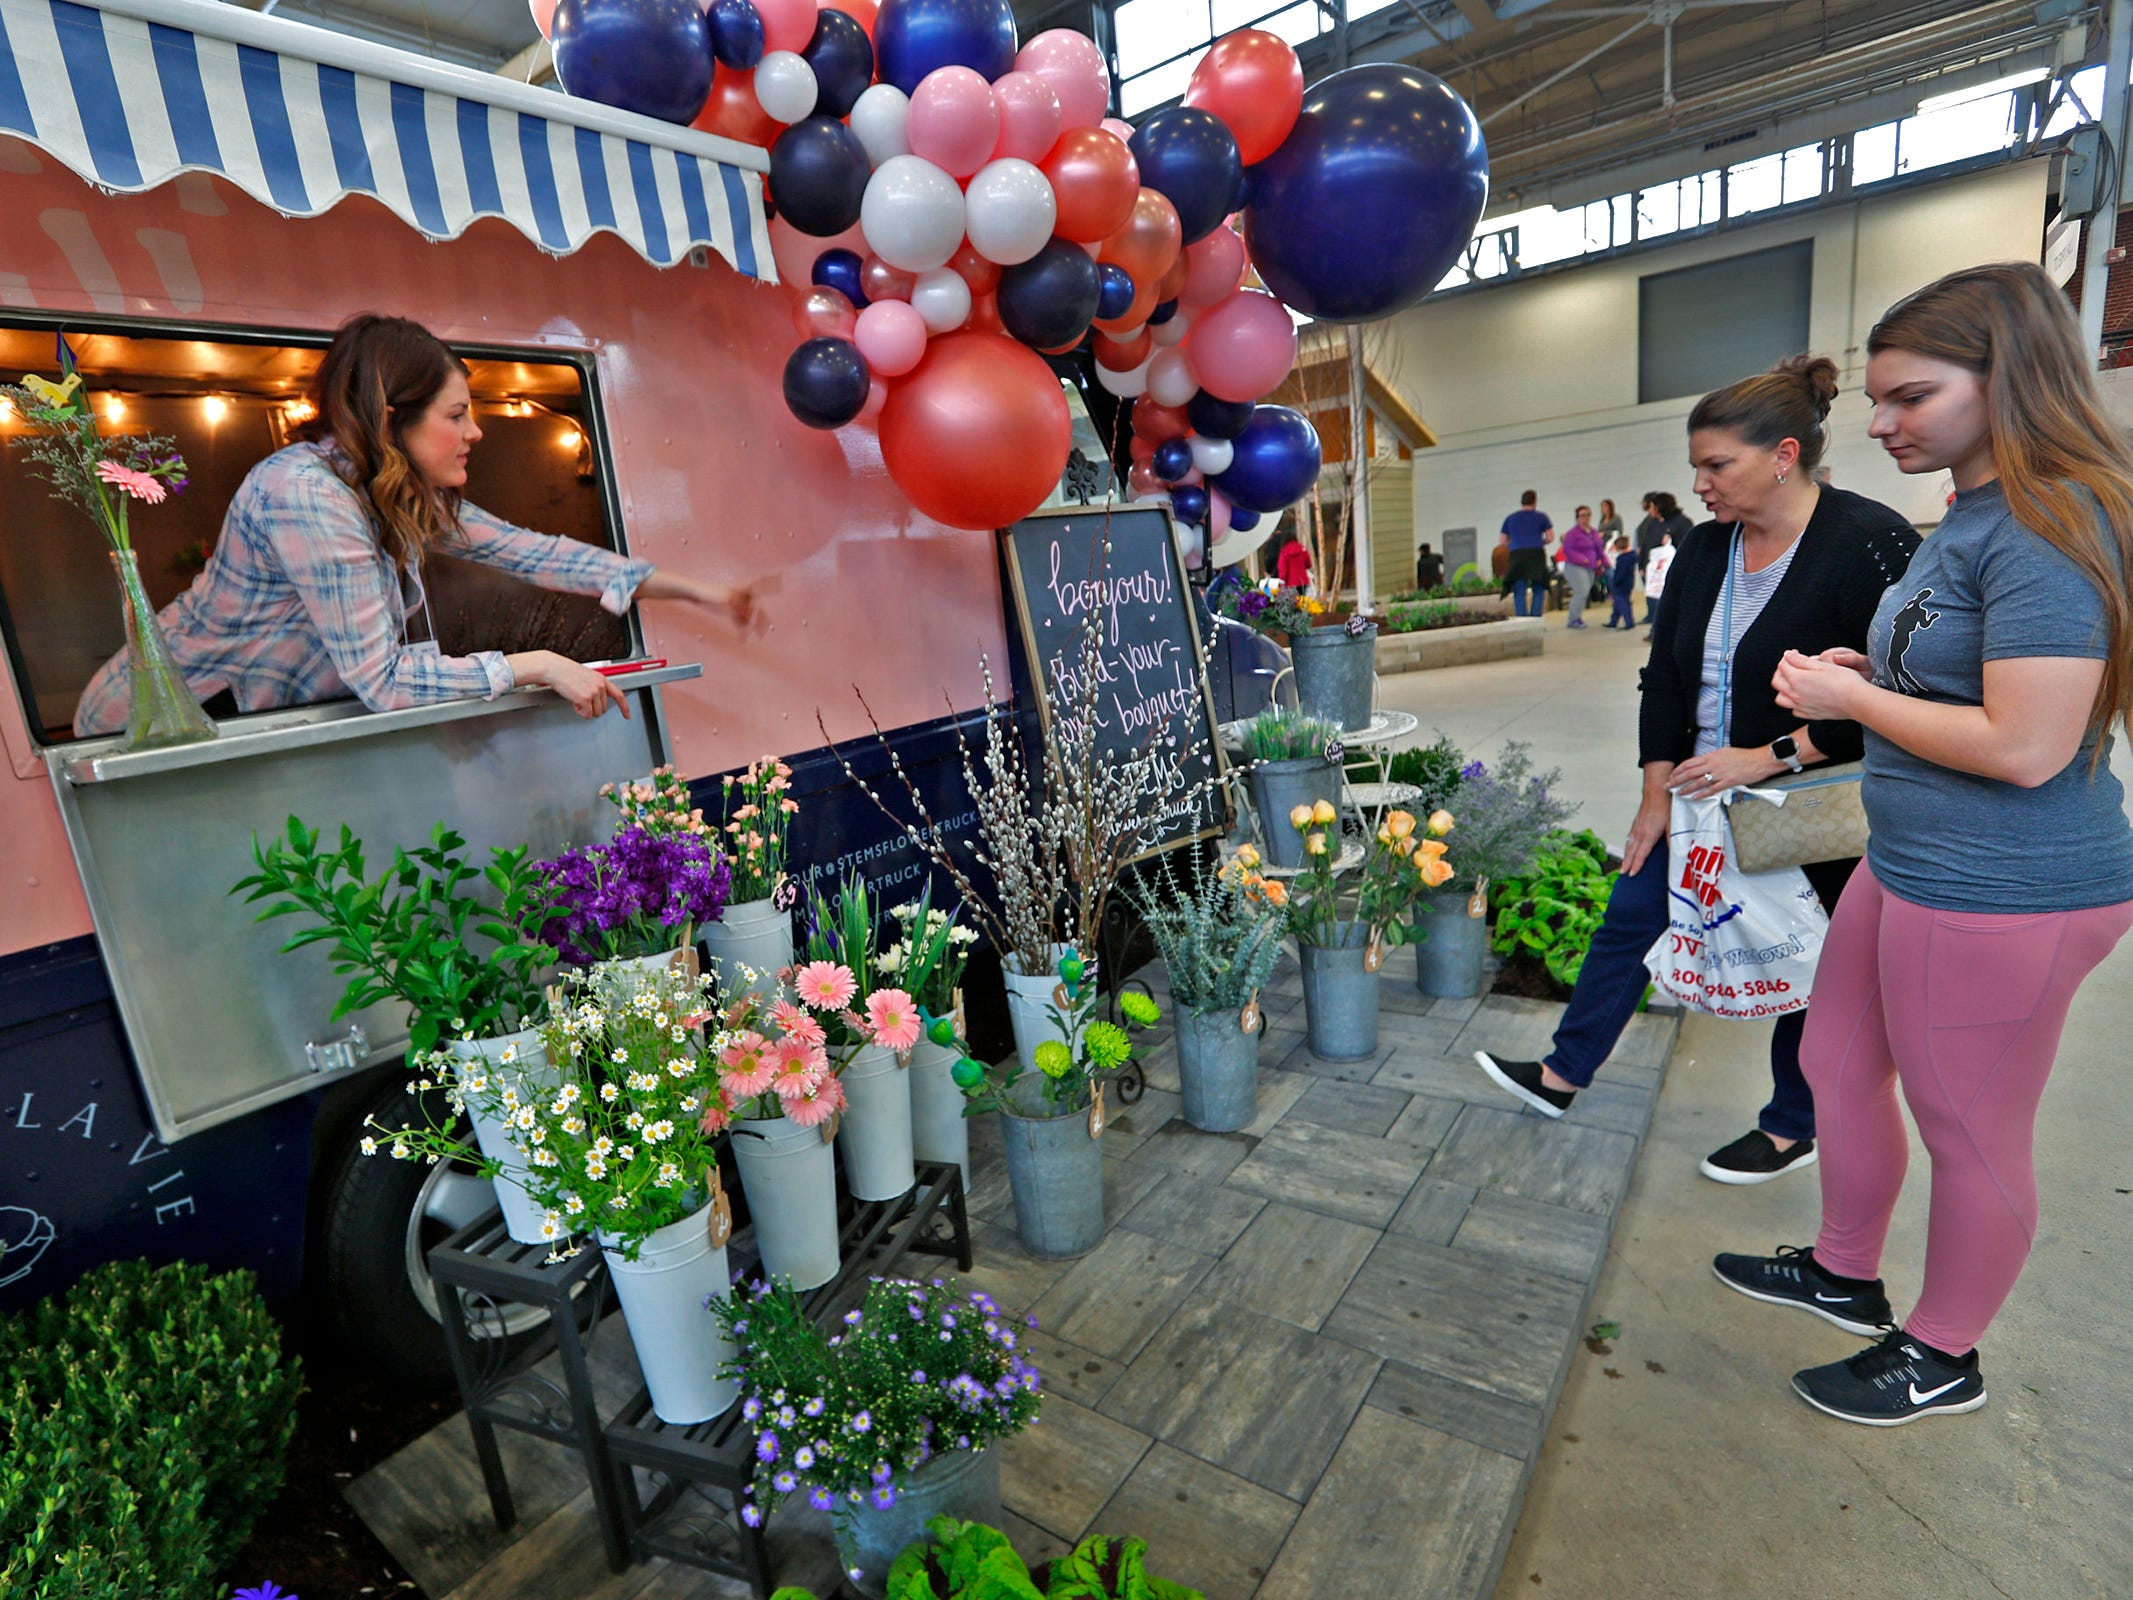 Katie Conway, left, owner of Stemsflowertruck.com, peeks out from her flower truck to point out flowers to Chris Layton, center, and her daughter, Emily Layton at the Indiana Flower + Patio Show, at the Indiana State Fairgrounds, Sunday, March 10, 2019.